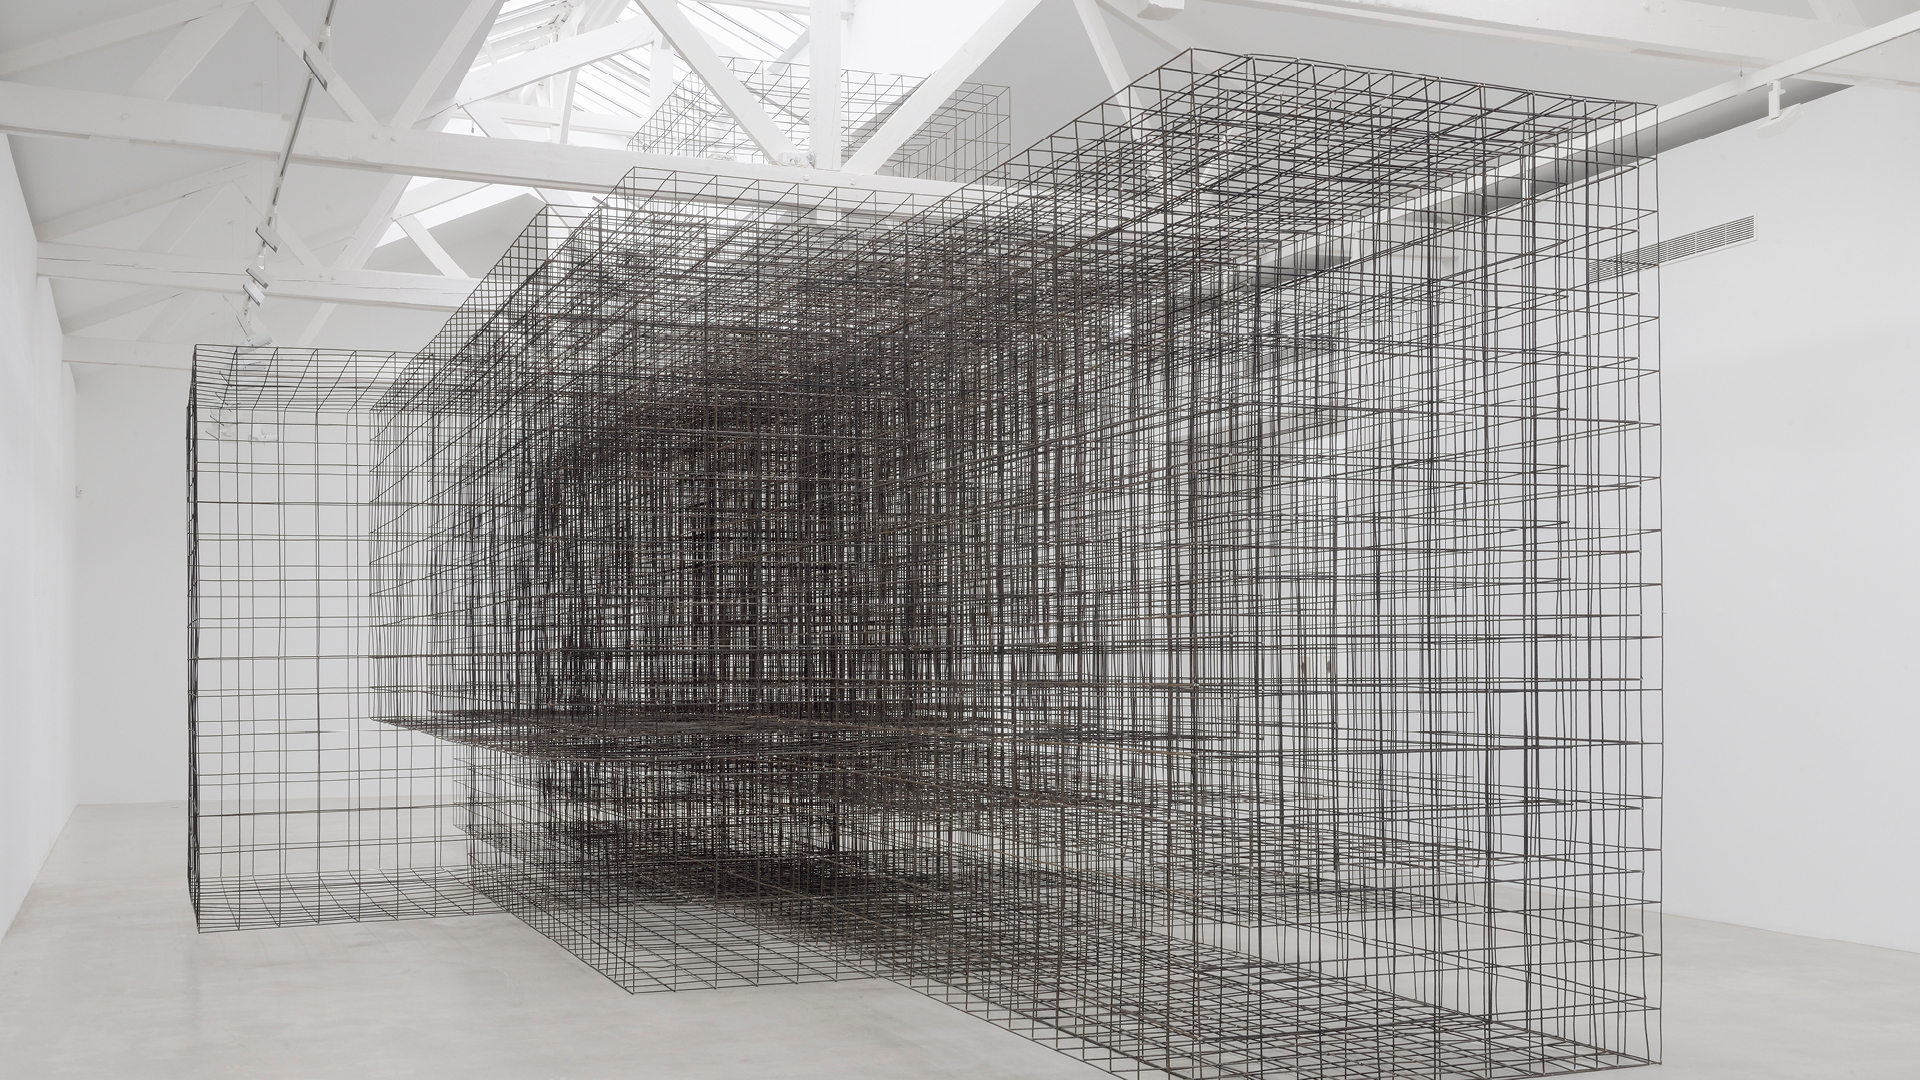 Antony Gormley, Matrix II, 2014. 6 mm mild steel reinforcing mesh, 550 x 750 x 1500 cm. Installation view, Galerie Thaddaeus Ropac, Pantin, France © the artist | Anotny Gormley | STIR